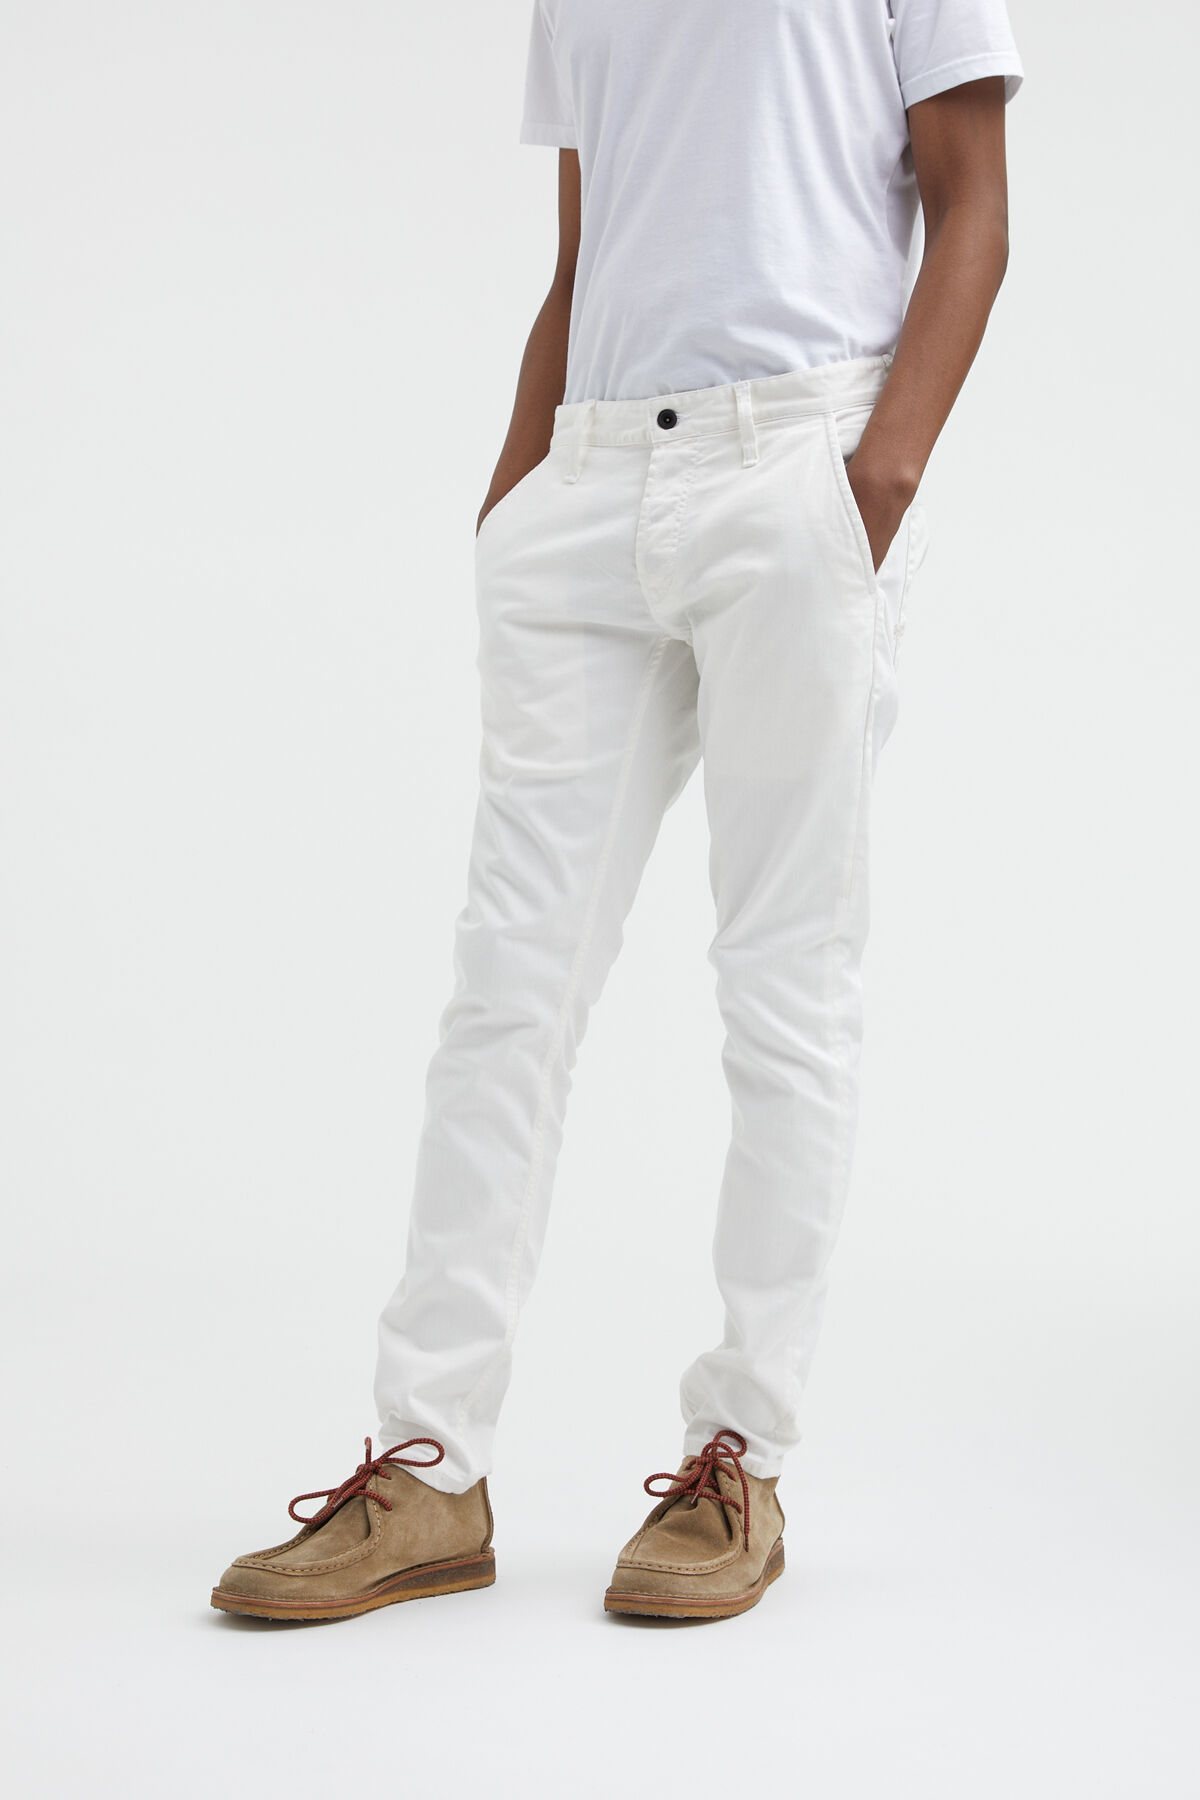 YORK White Clean Finish Denim - Slim Tapered Fit